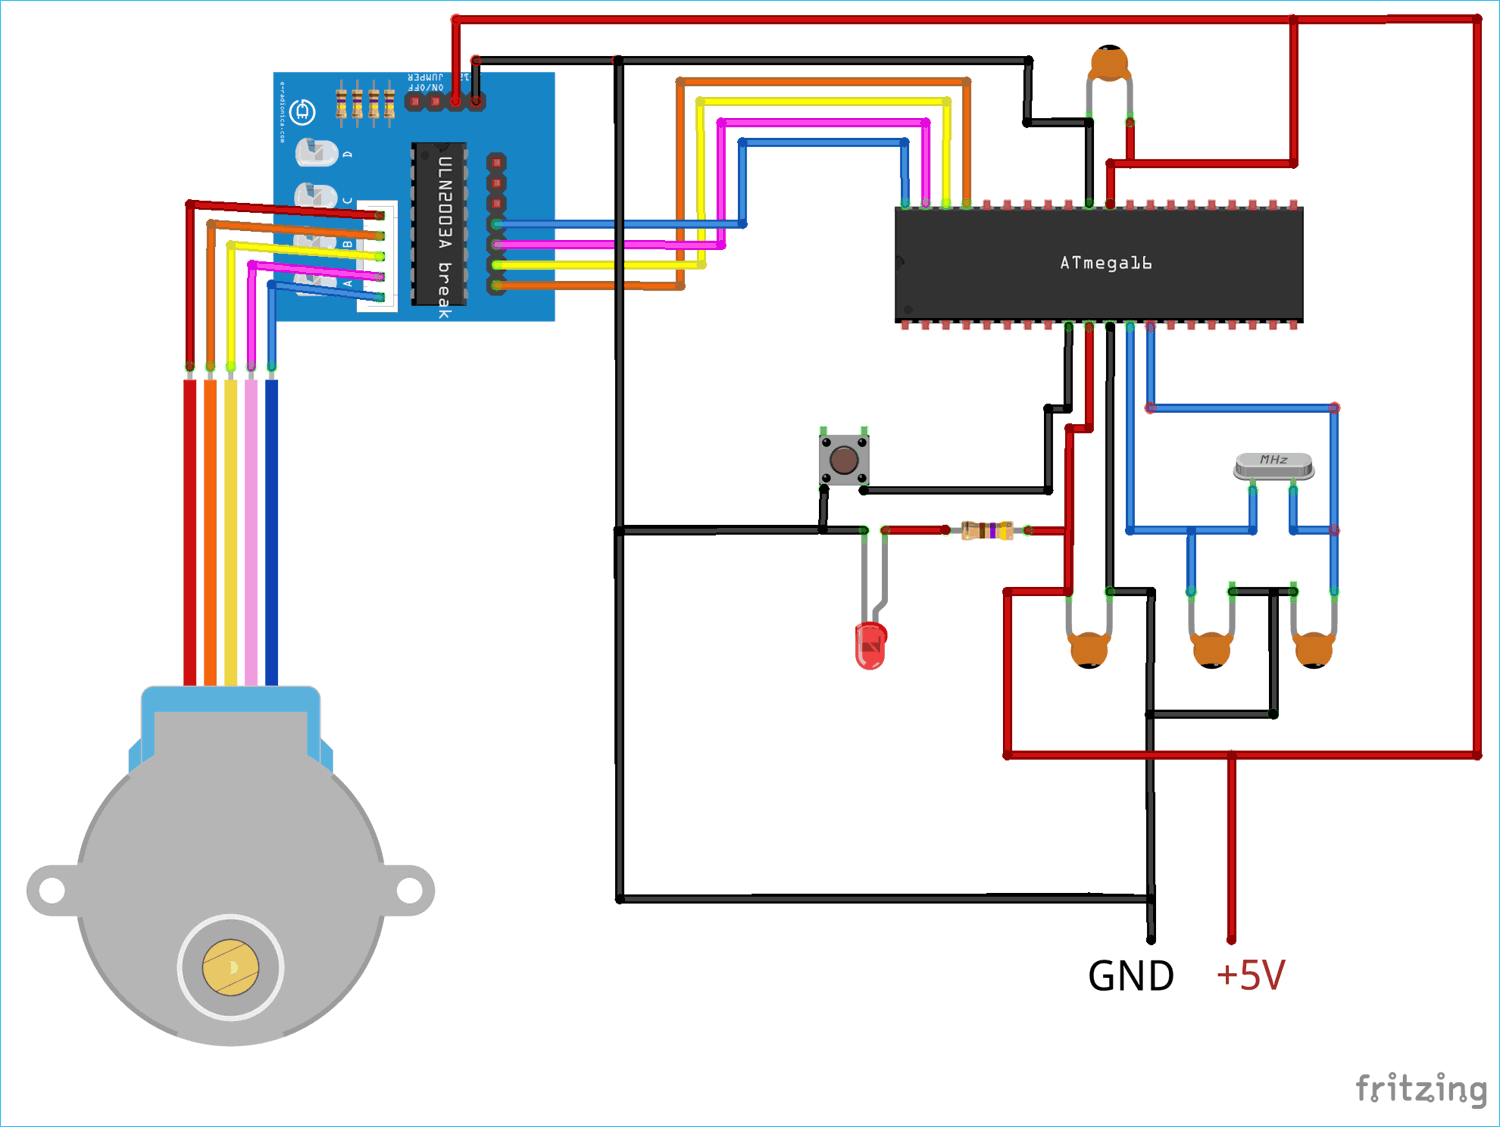 Circuit Diagram for Interfacing Stepper Motor with AVR Microcontroller Atmega16 using ULN2003